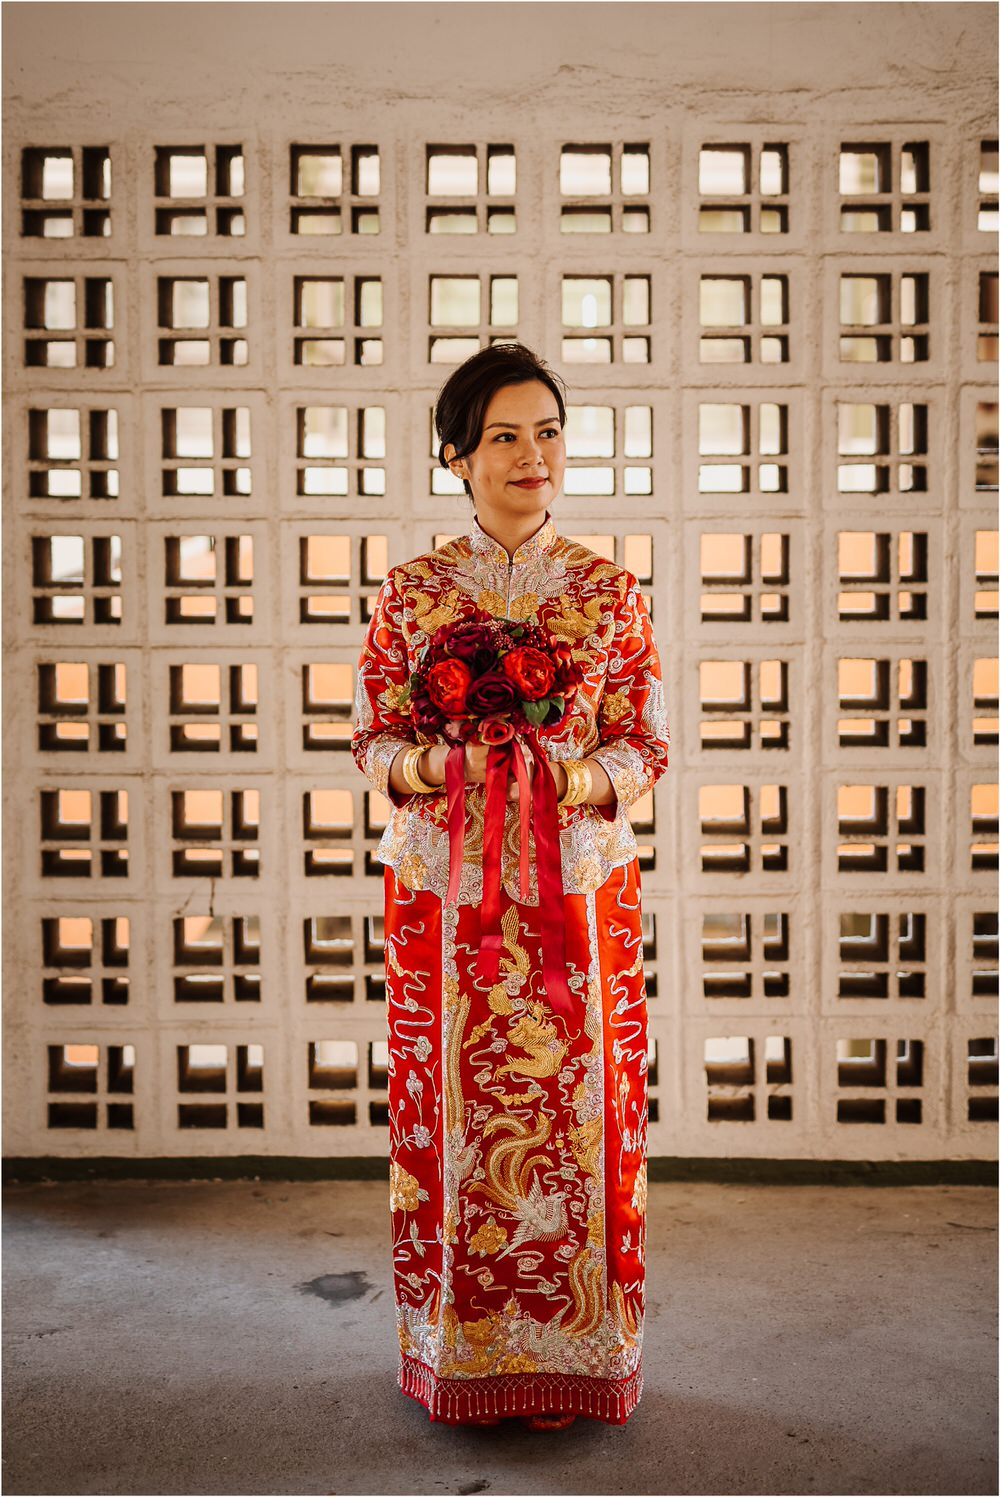 hong kong wedding photographer intercontinental kowloon chinese tea ceremony traditional wedding photography 0063.jpg